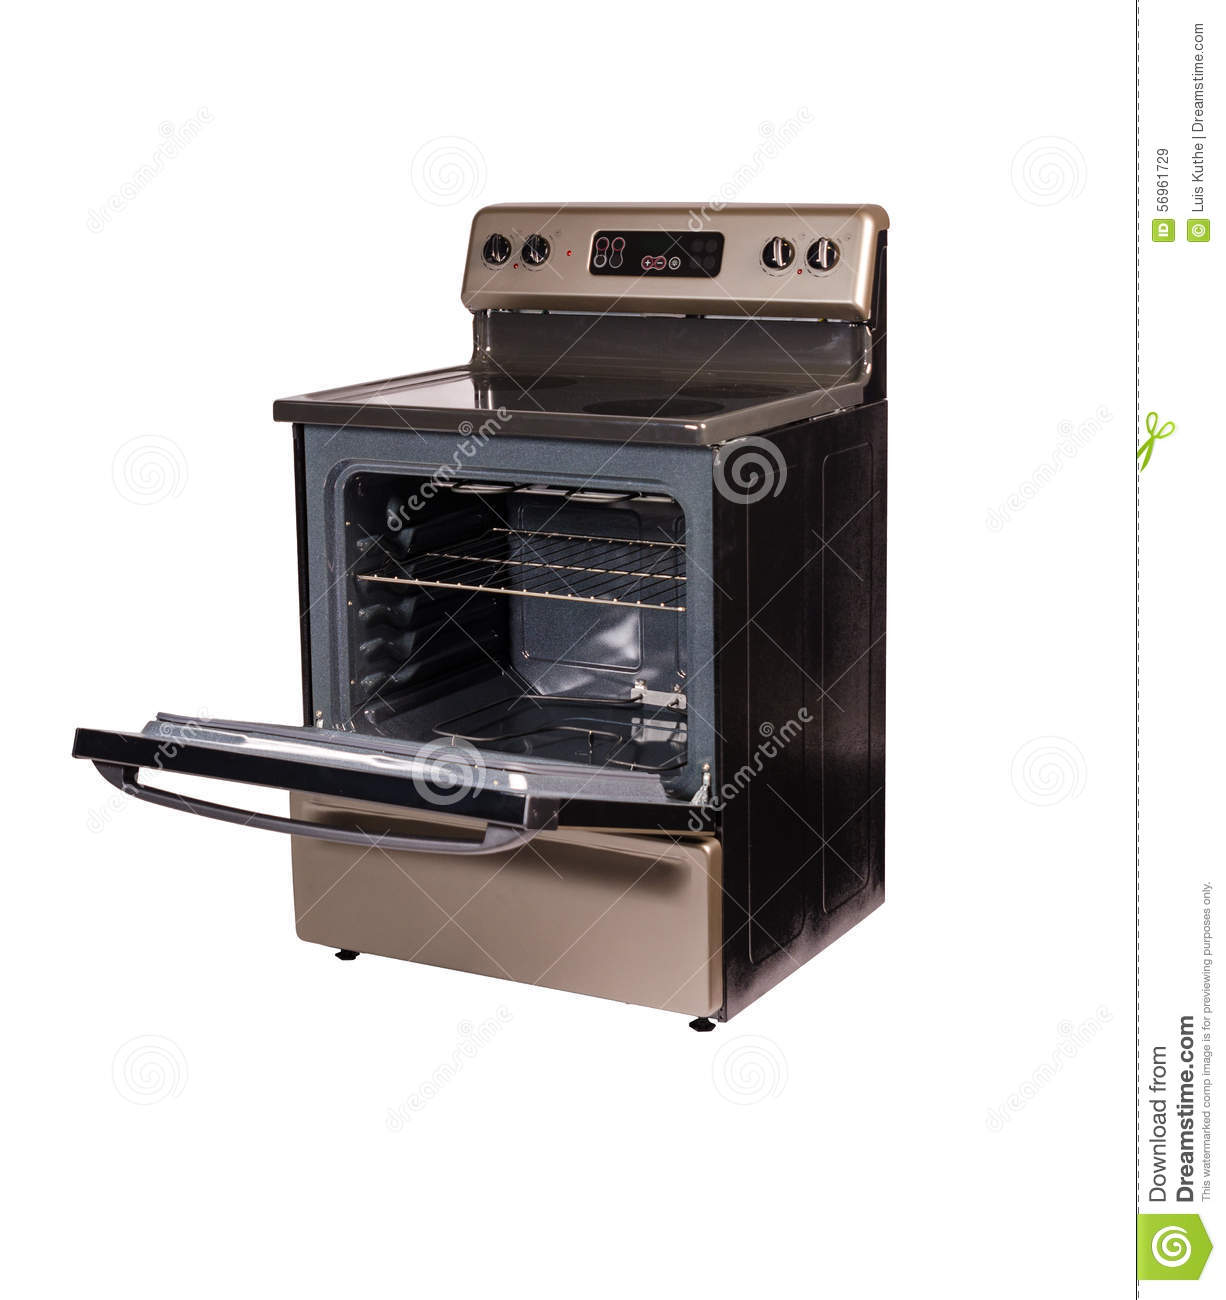 Open Oven In Kitchen: Isolated Vitroceramic Stove Oven Door Open Stock Image